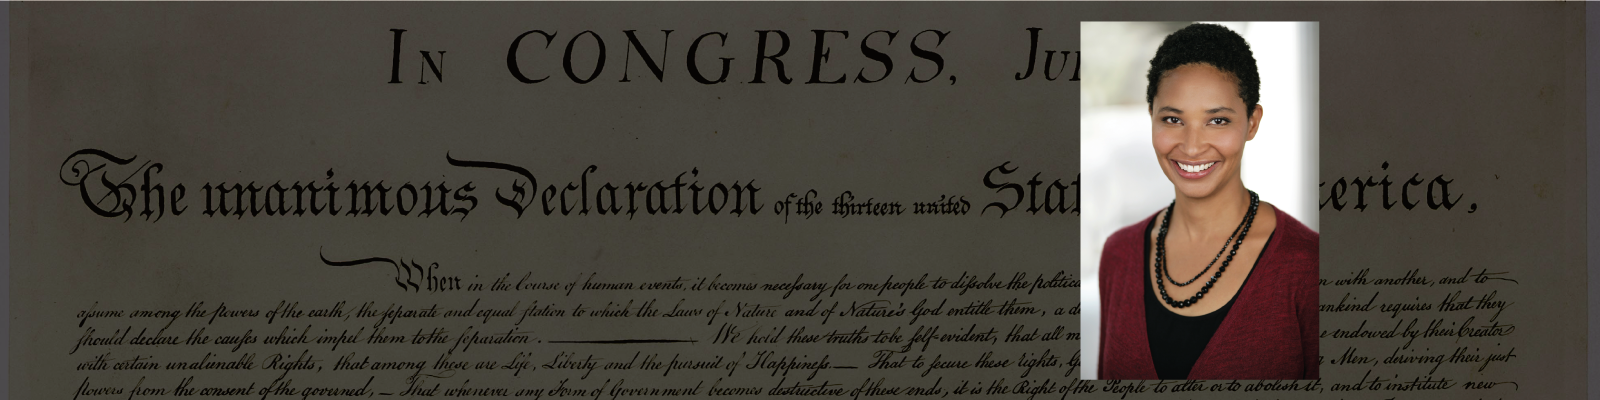 Reading the Declaration of Independence in Defense of Equality with Danielle Allen